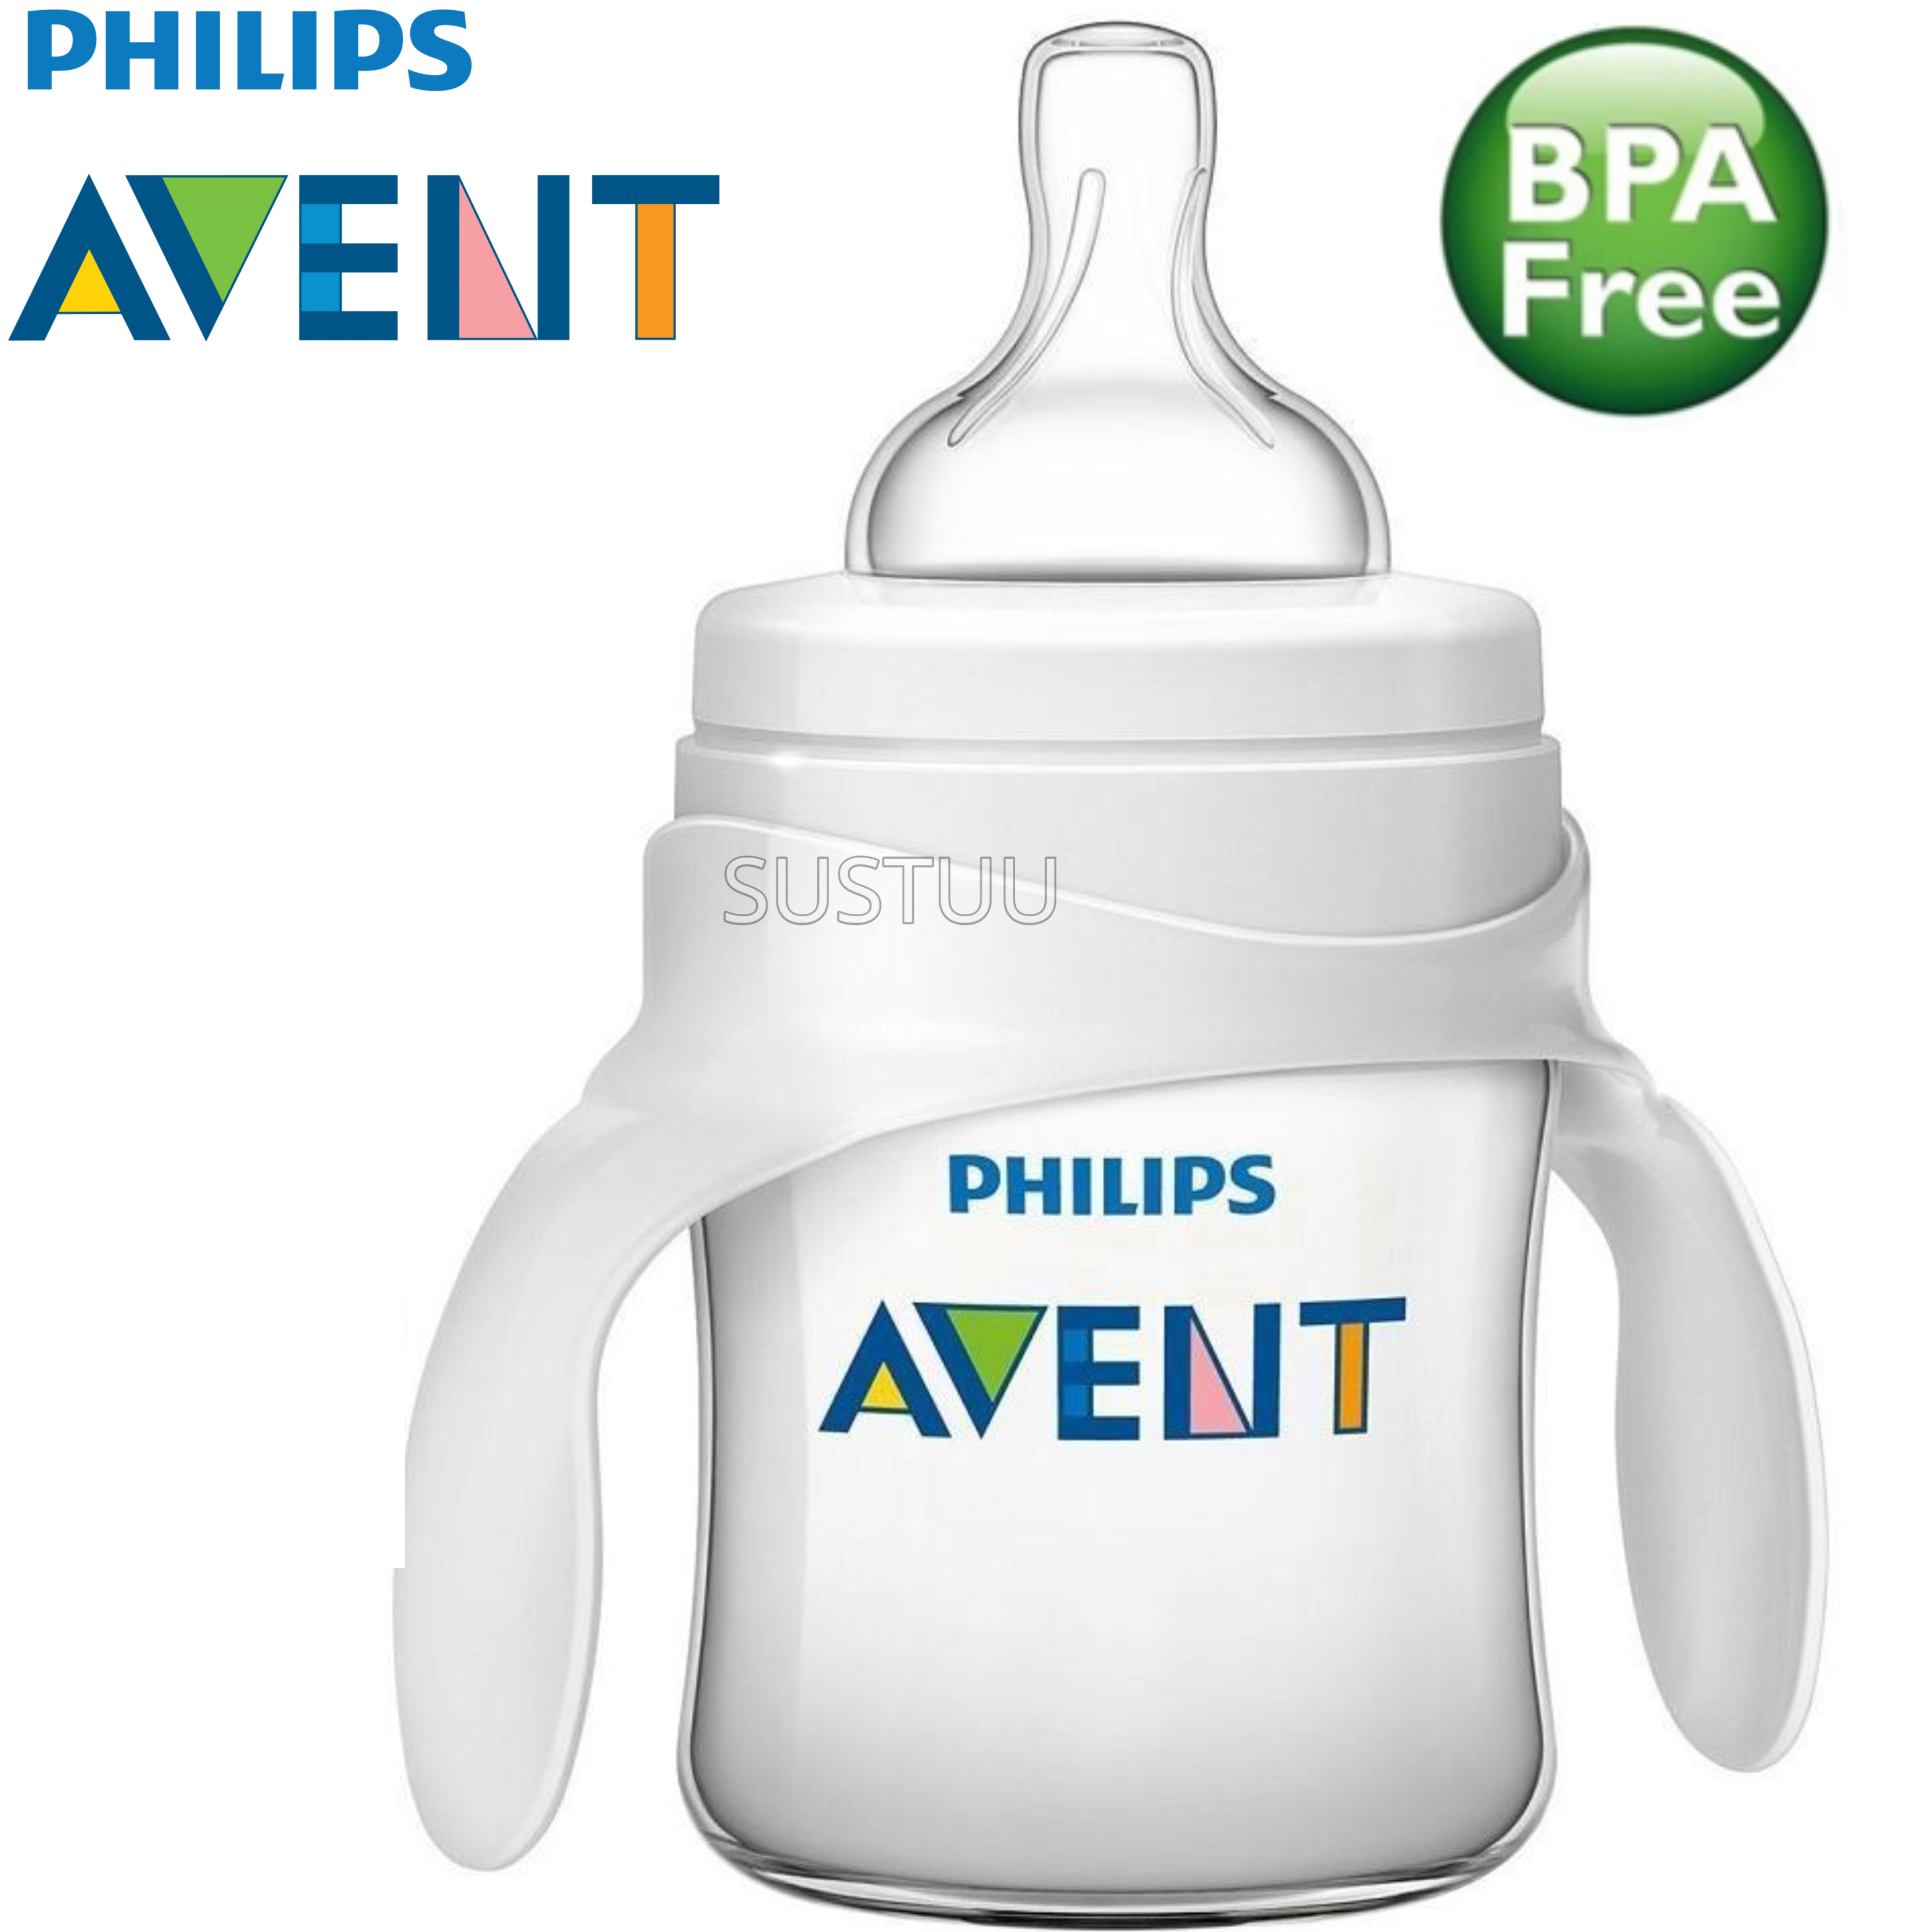 Philips Avent Classic+ Baby Bottle to Cup Trainer Kit|Drink Learner|BPA Free|4+